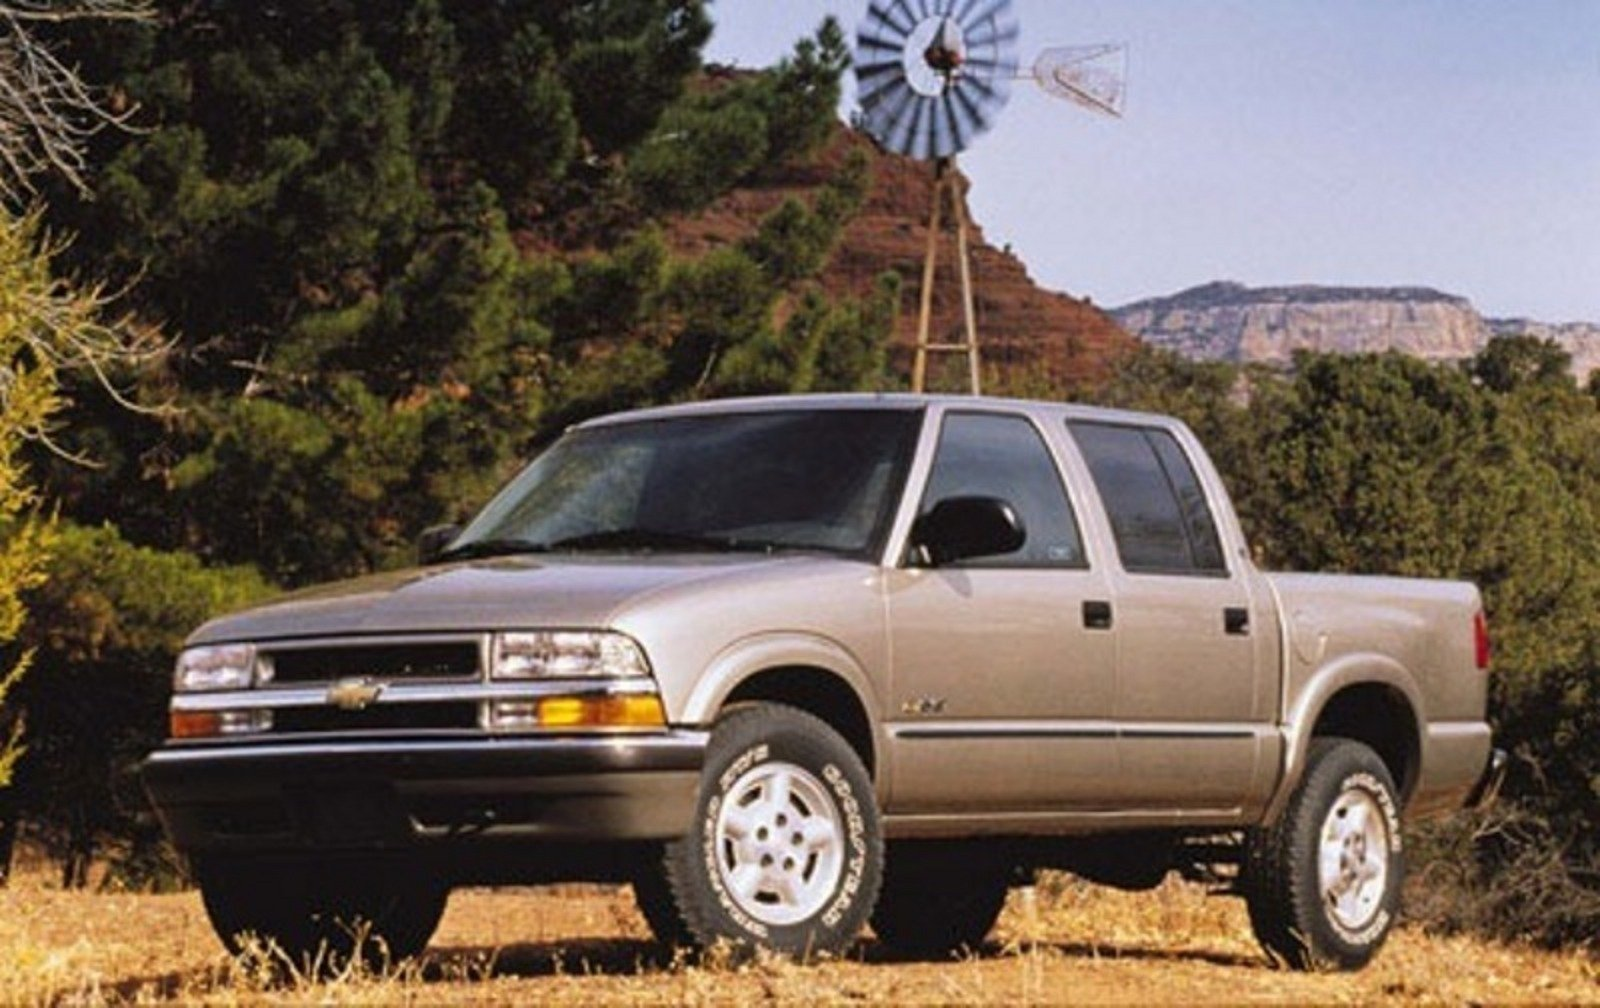 All Chevy 97 chevy s10 specs : 1994 - 2004 Chevrolet S-10 Review - Top Speed